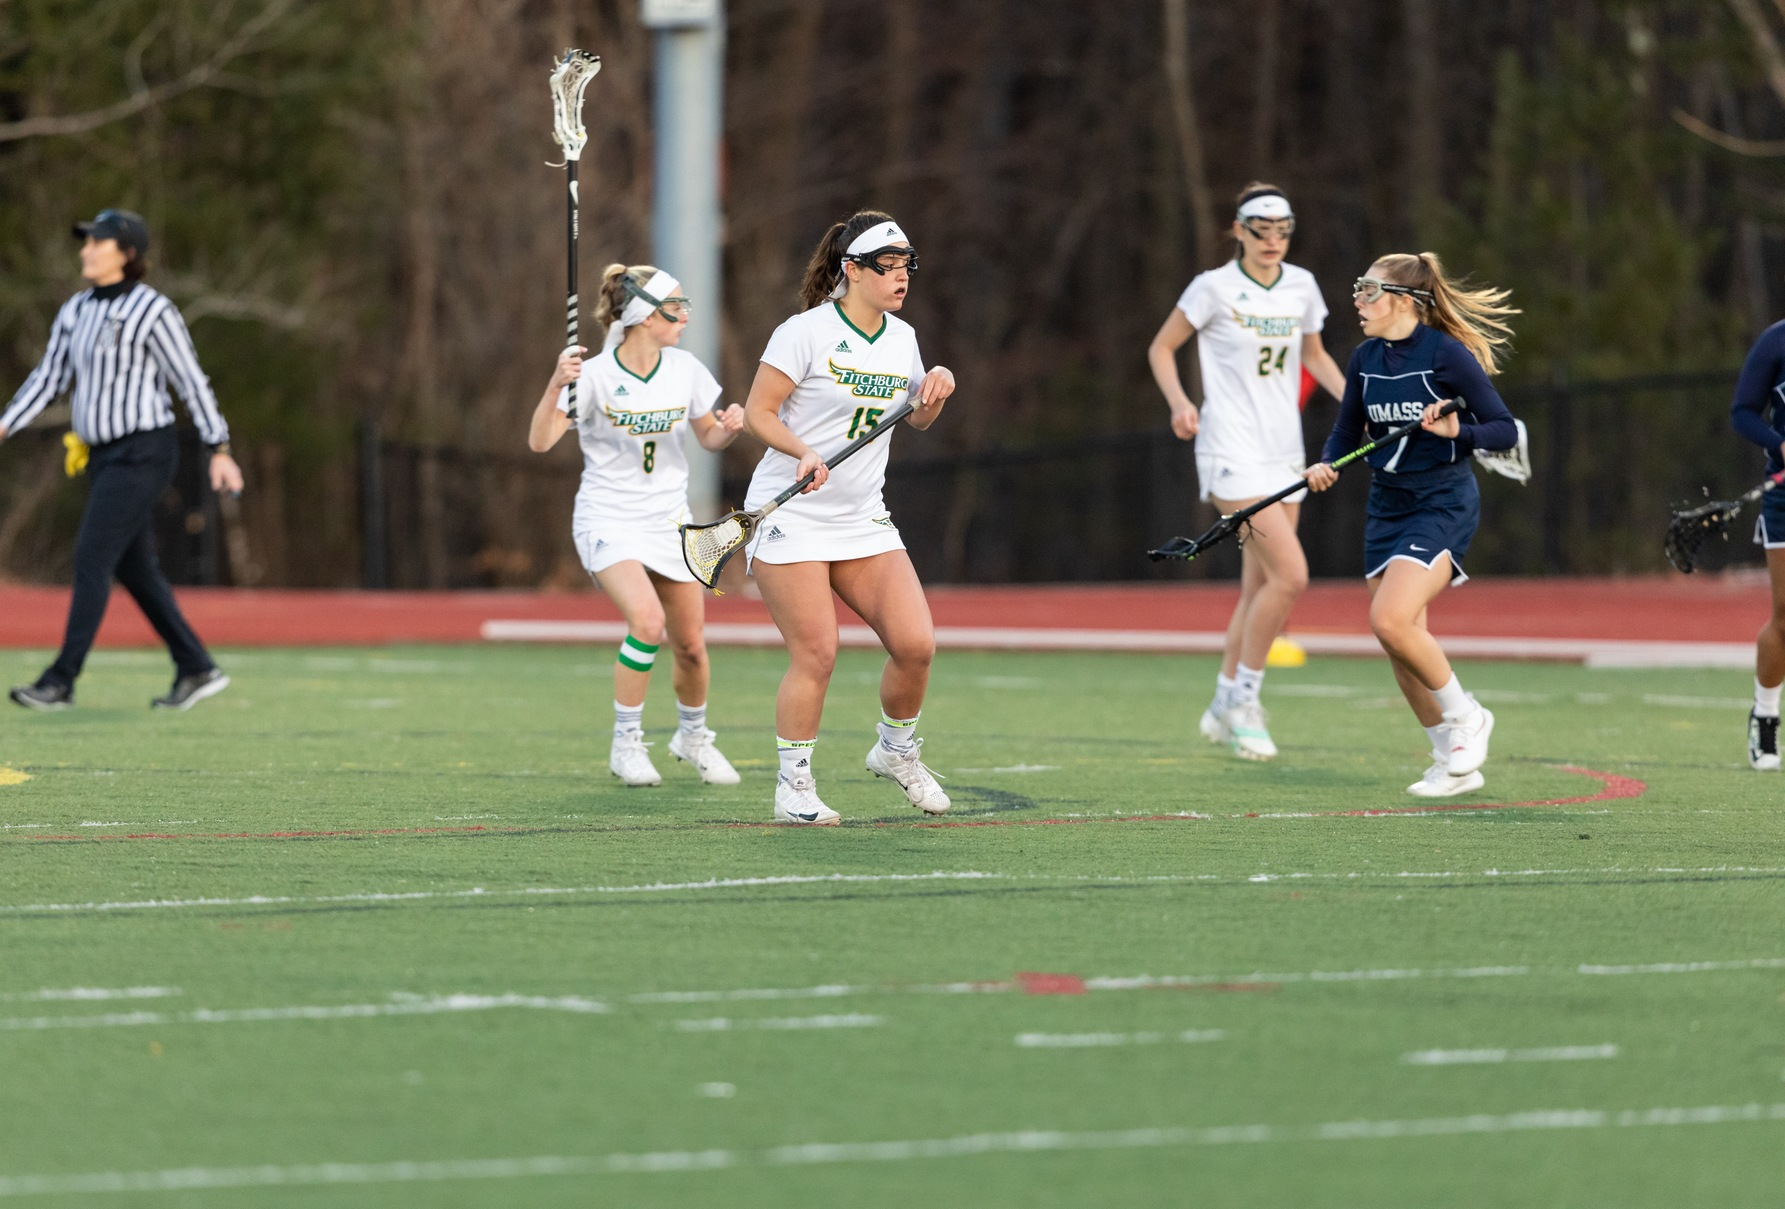 Falcons Drop 15-5 Decision To Rams In MASCAC Action